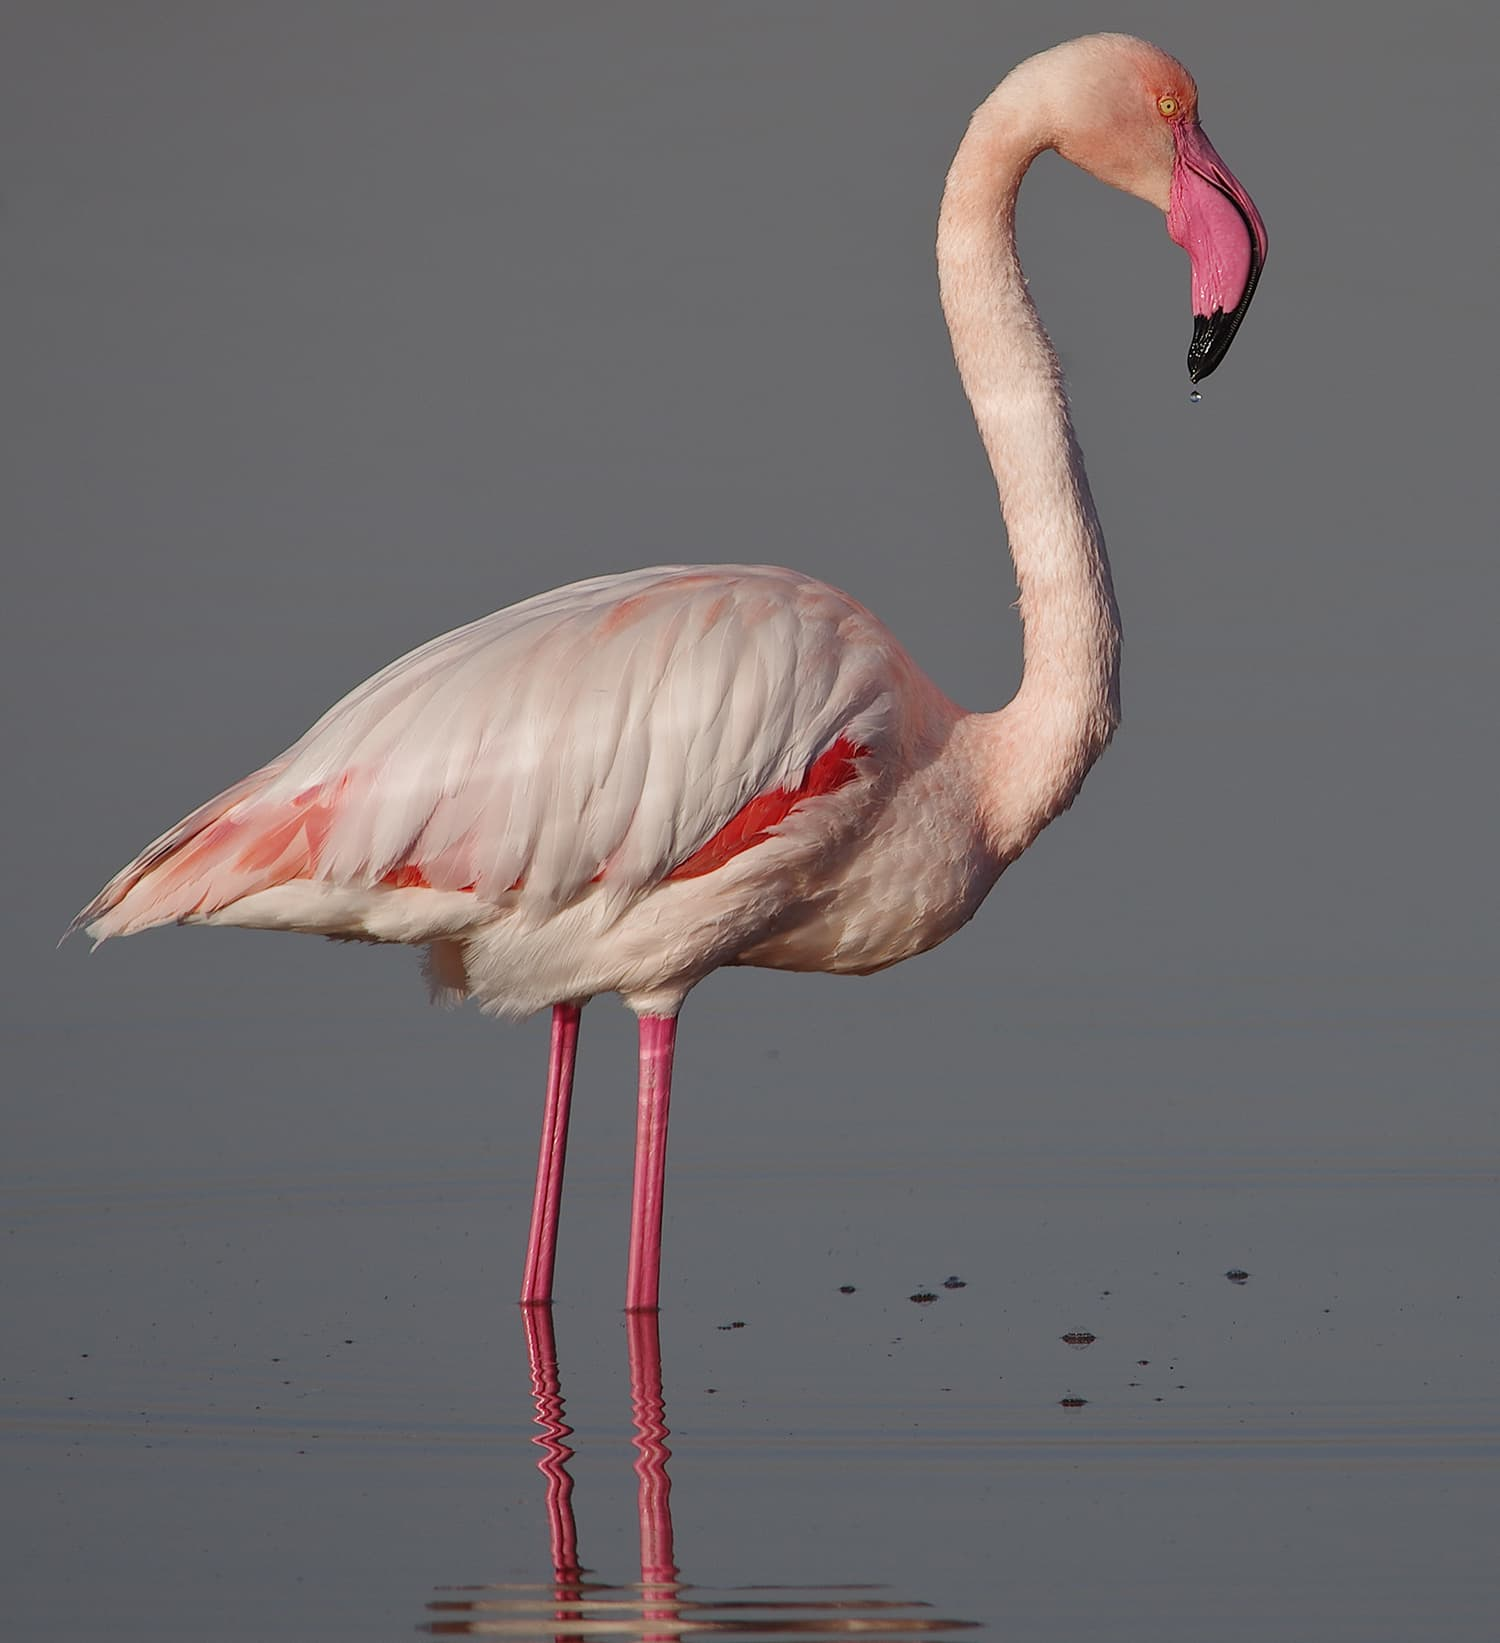 Eleventh place: Greater flamingo (Phoenicopterus roseus), Salines de Thyna Ramsar site, Tunisia. — Photo by Elgollimoh